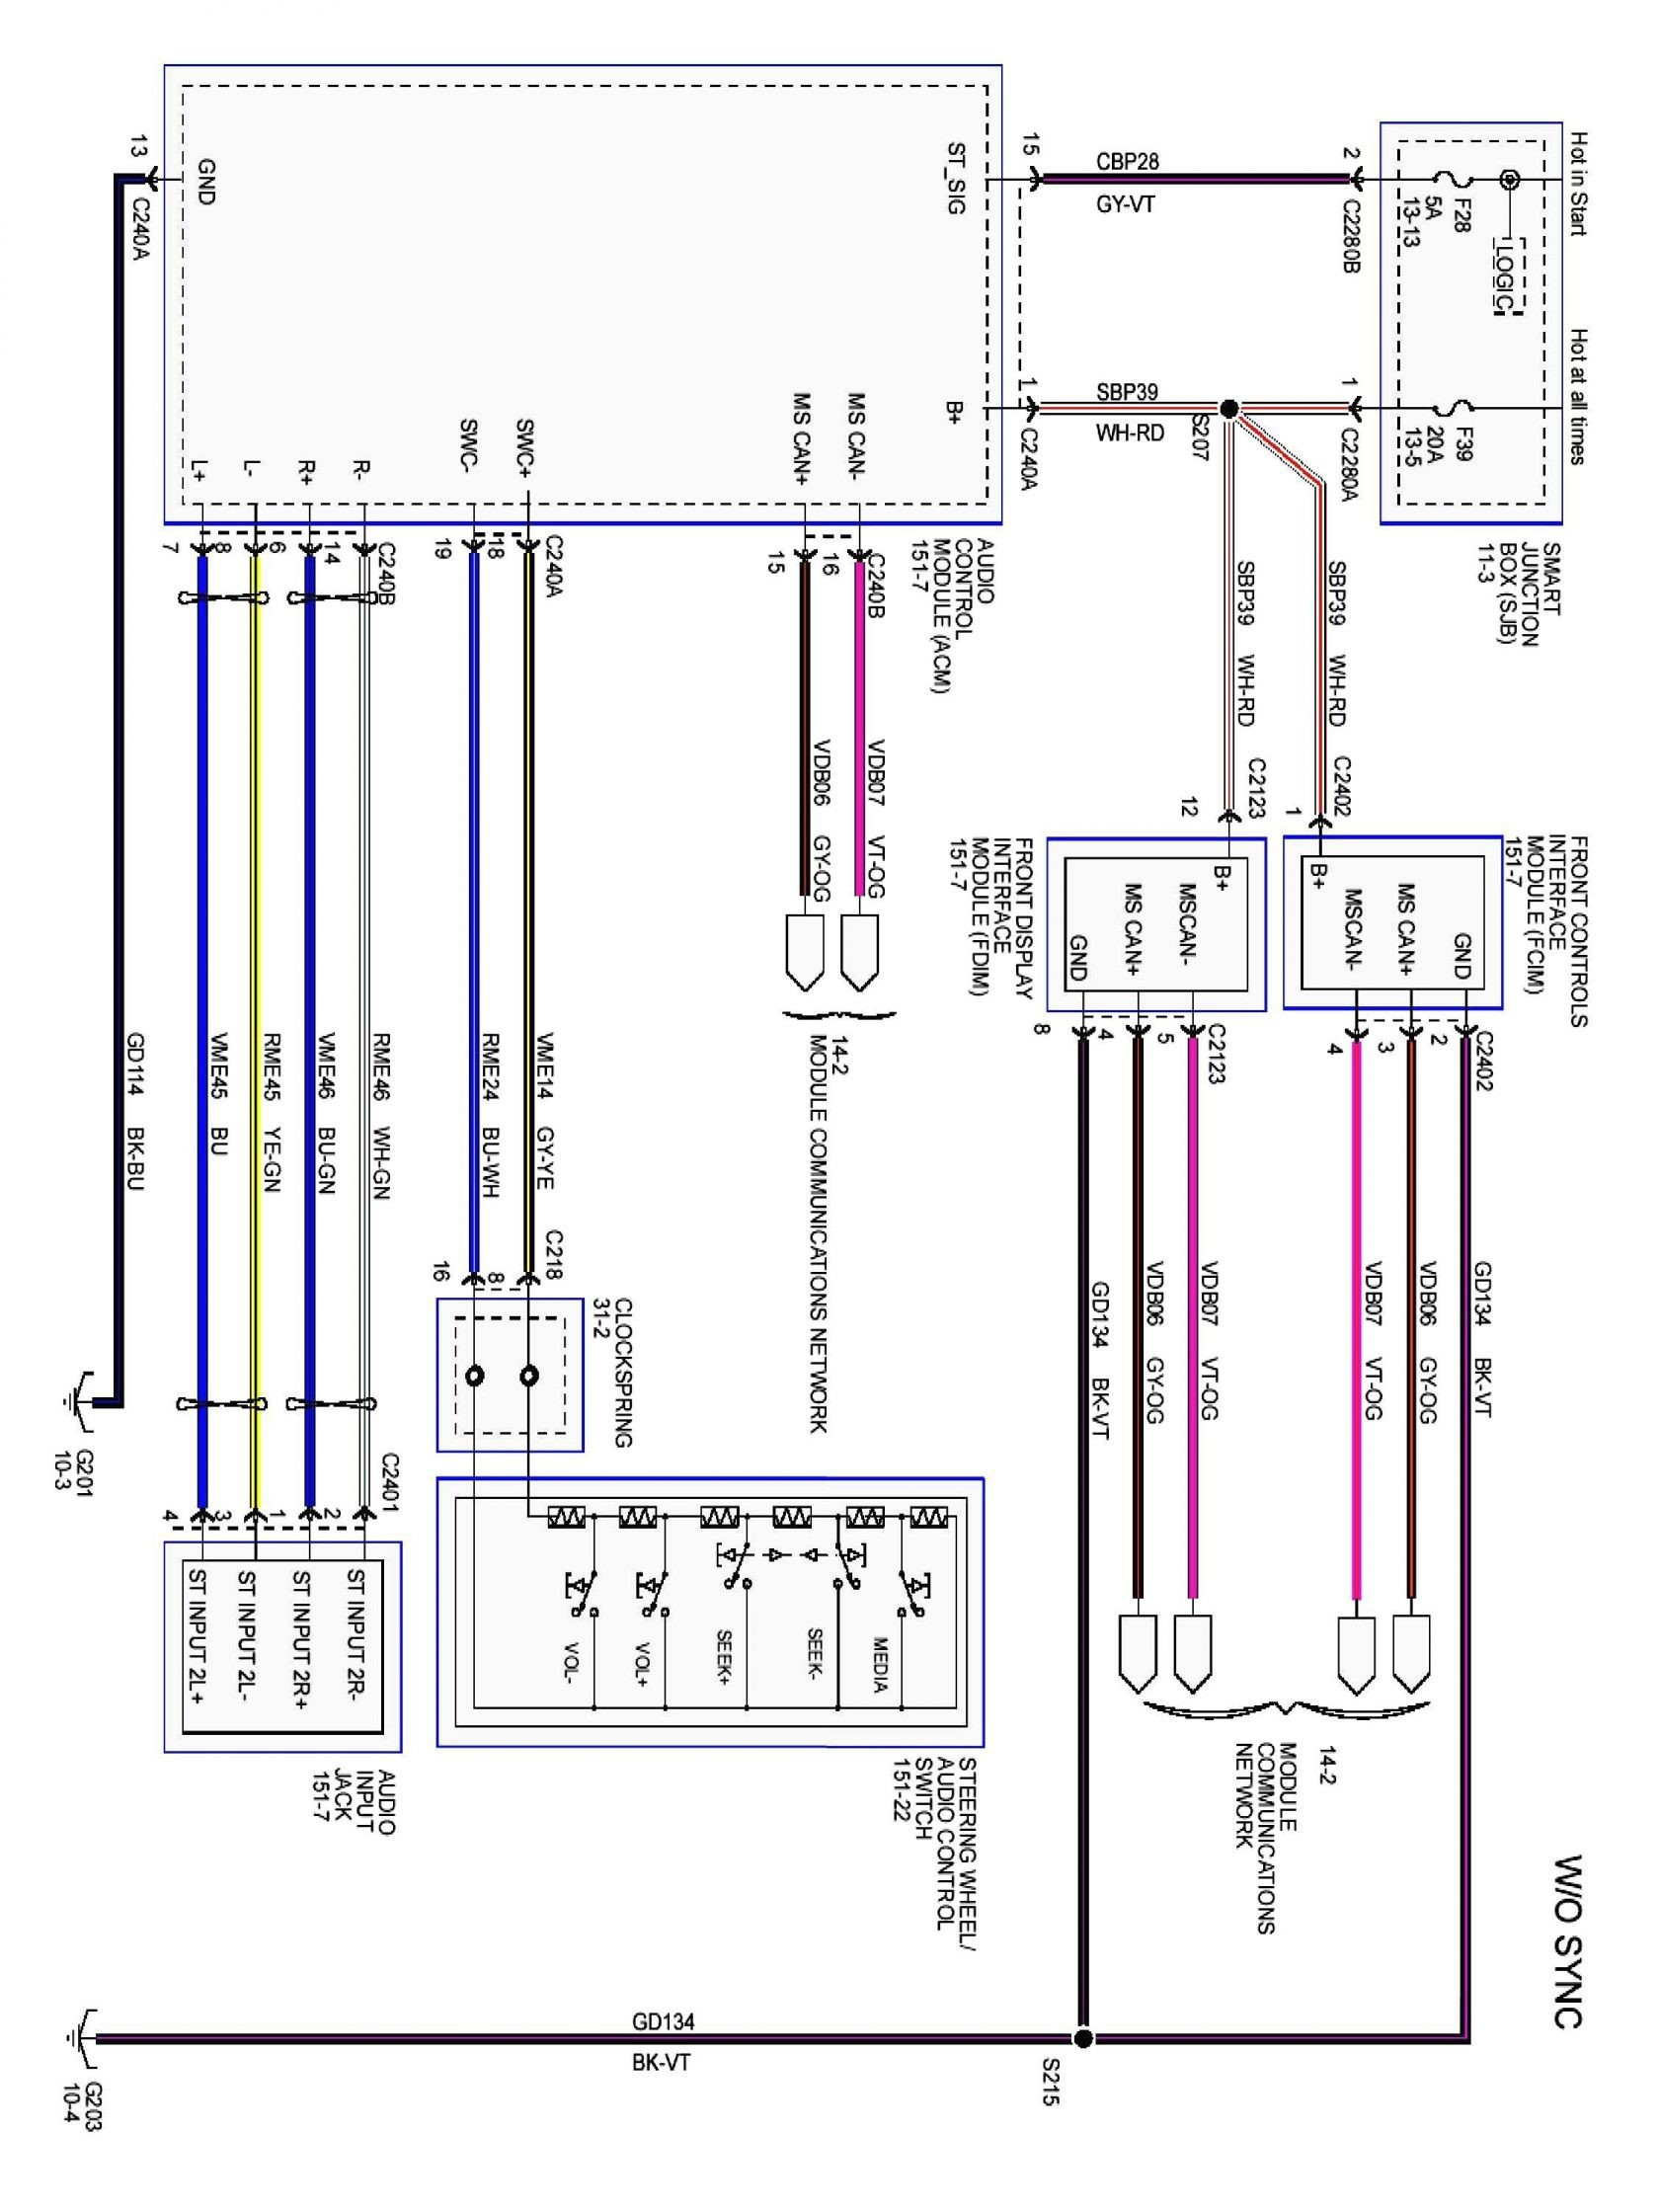 amp power step wiring diagram Collection-Wiring Diagram For Rv Steps New Amp Power Step Wiring Diagram 11-g